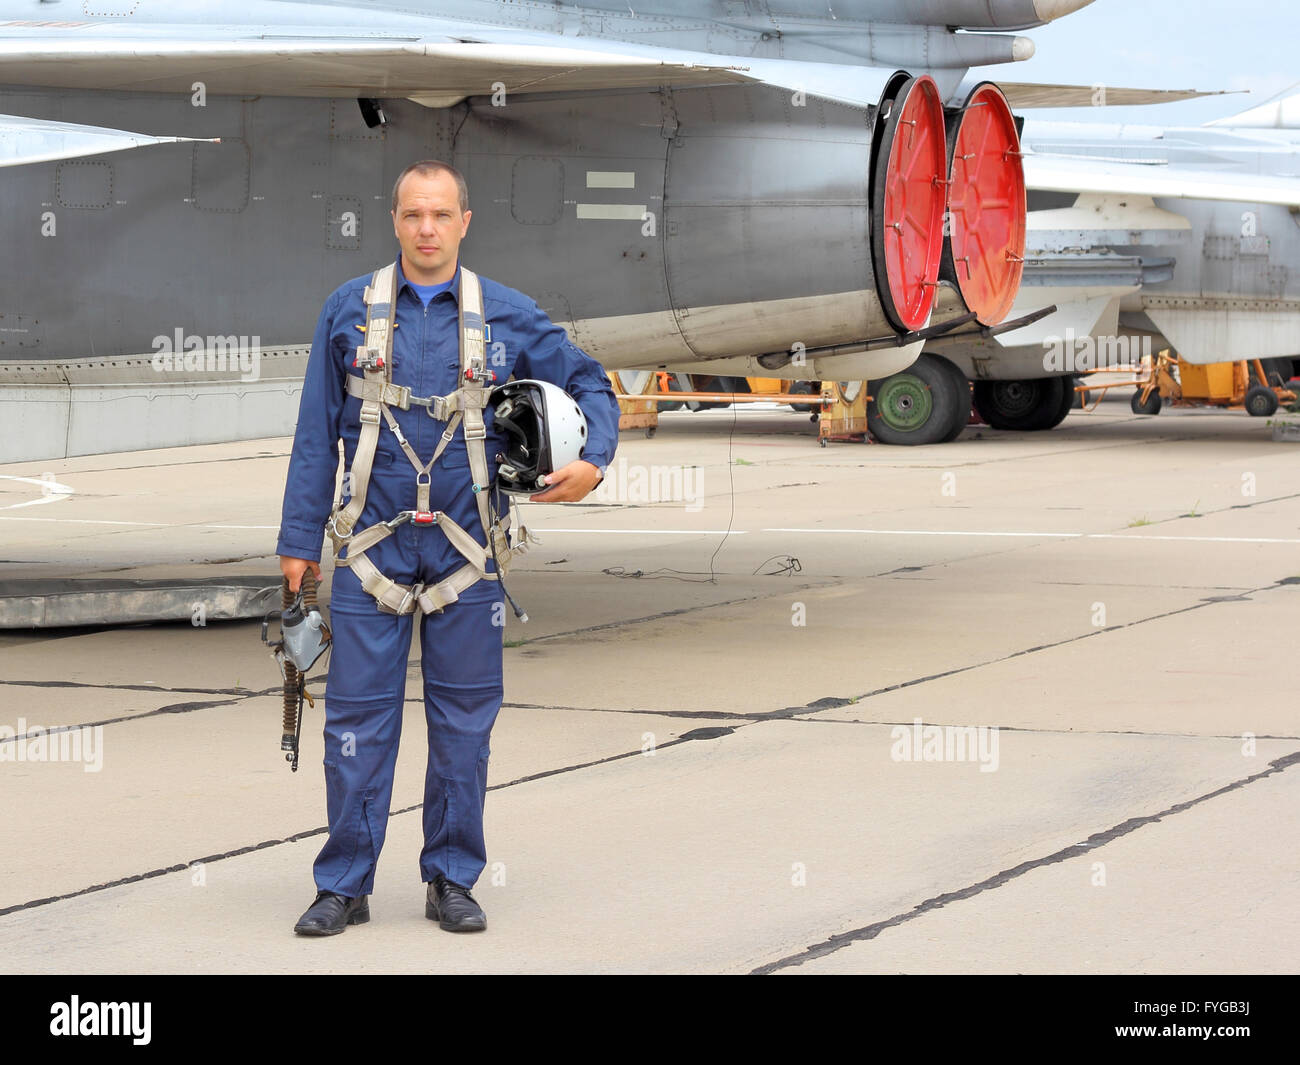 military pilot in a helmet near the aircraft - Stock Image